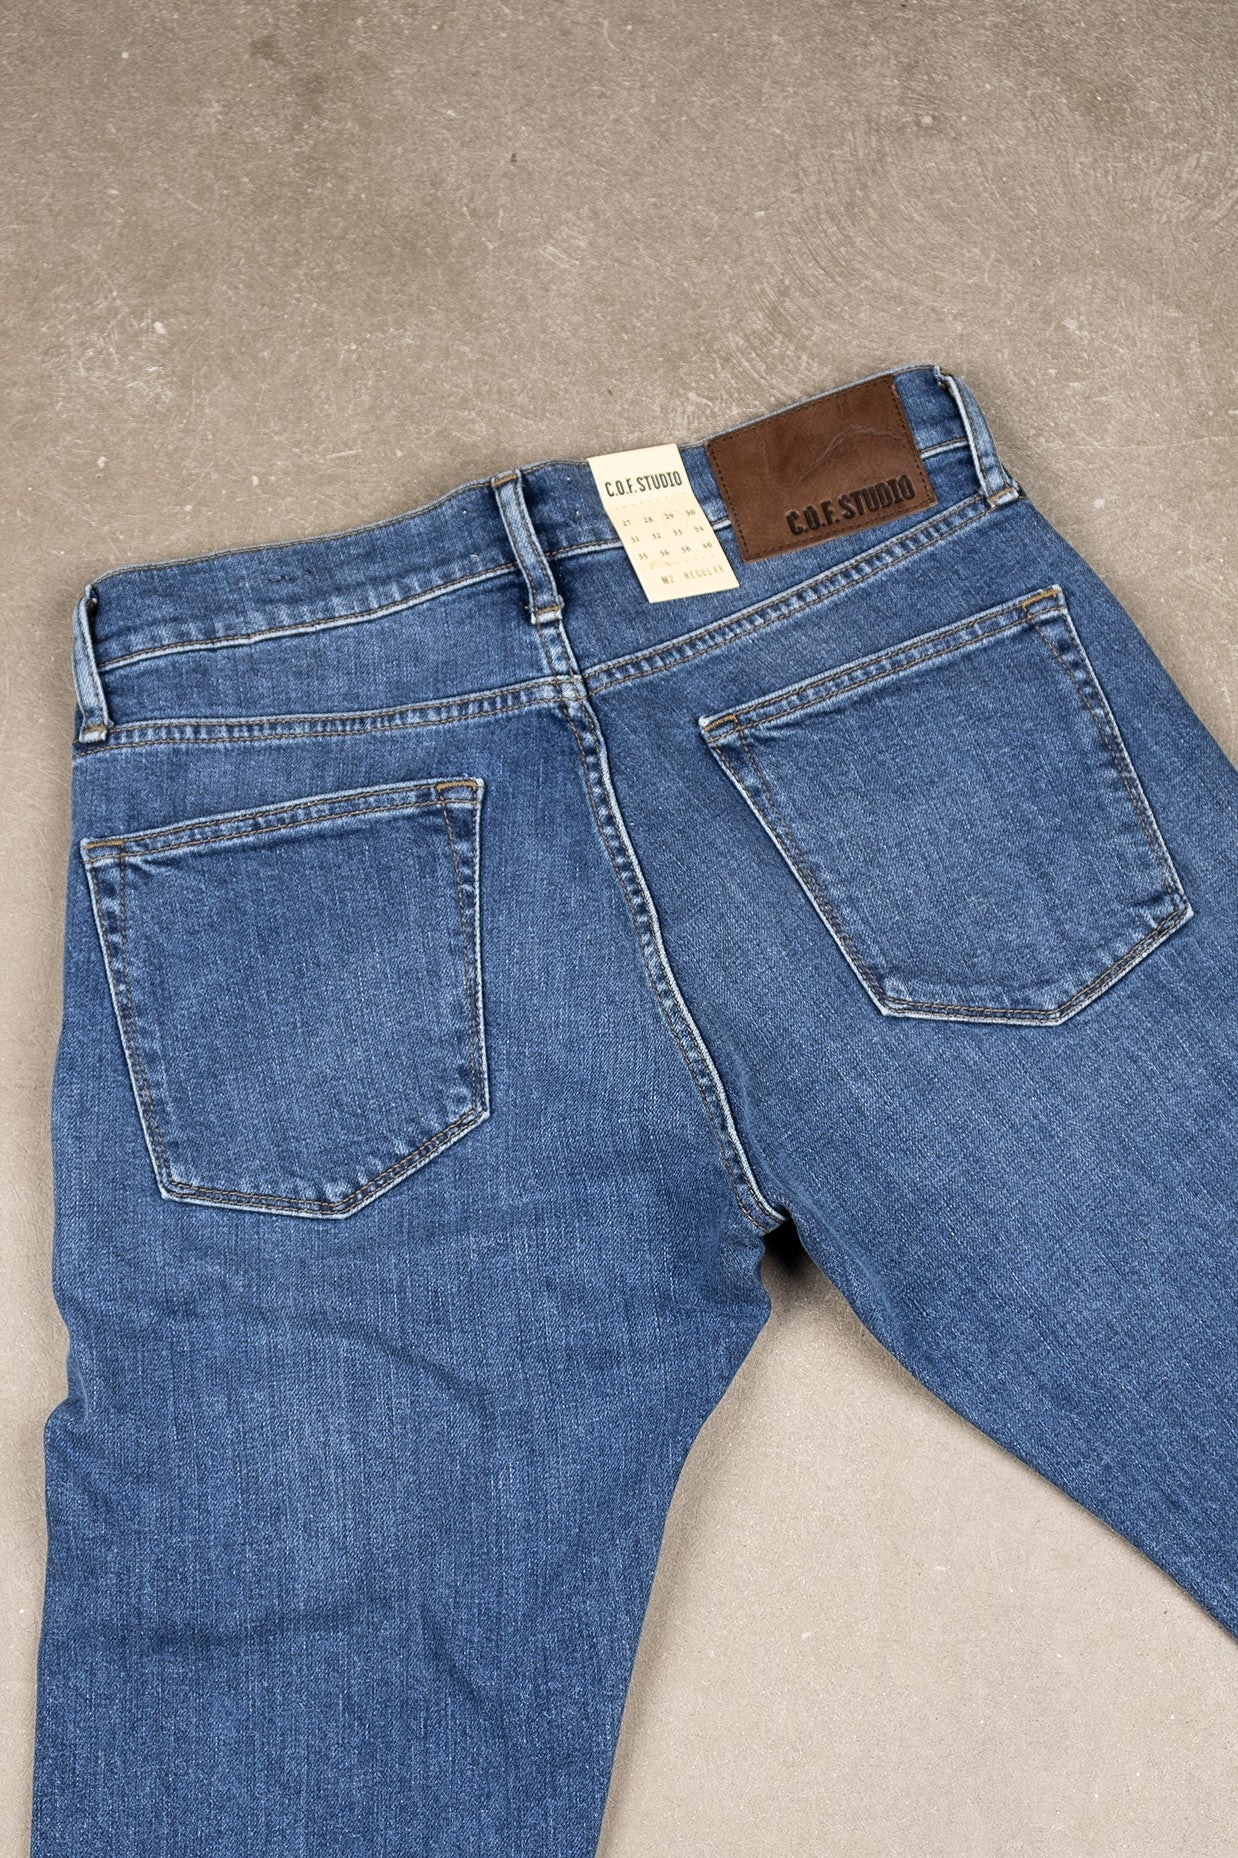 M2 Organic Indigo - Washed Blue